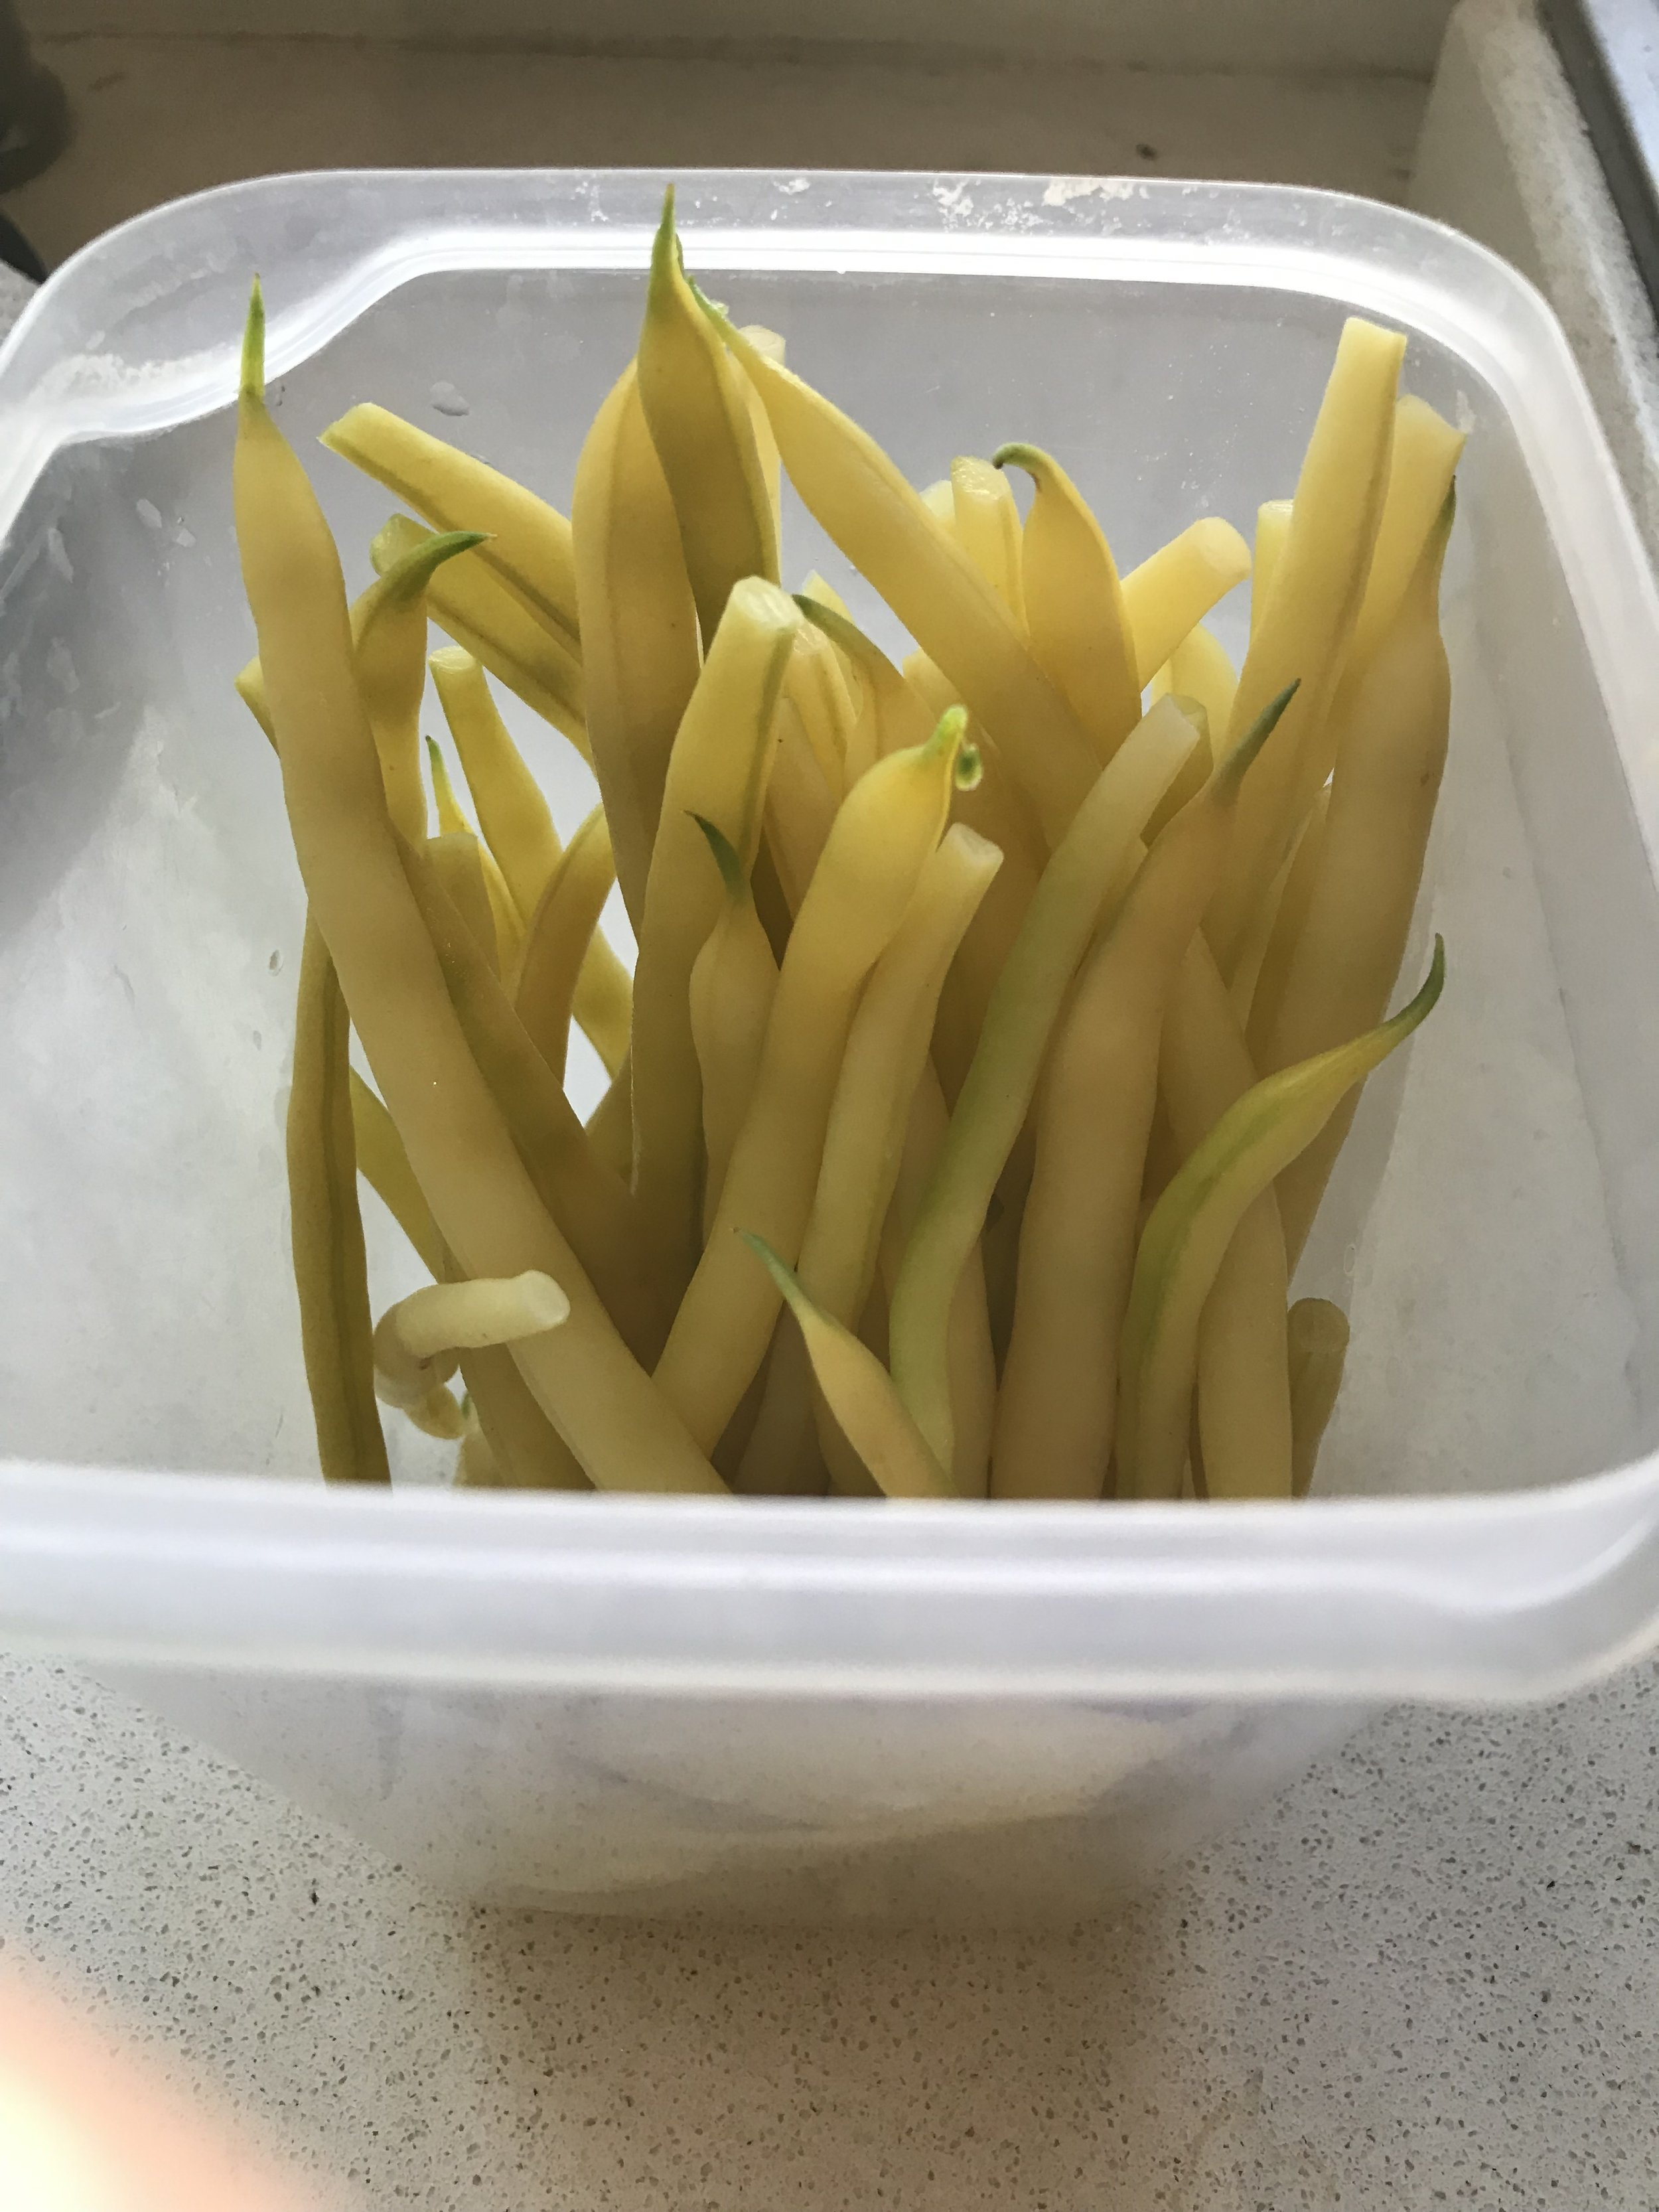 Storing cooked beans in an airtight container